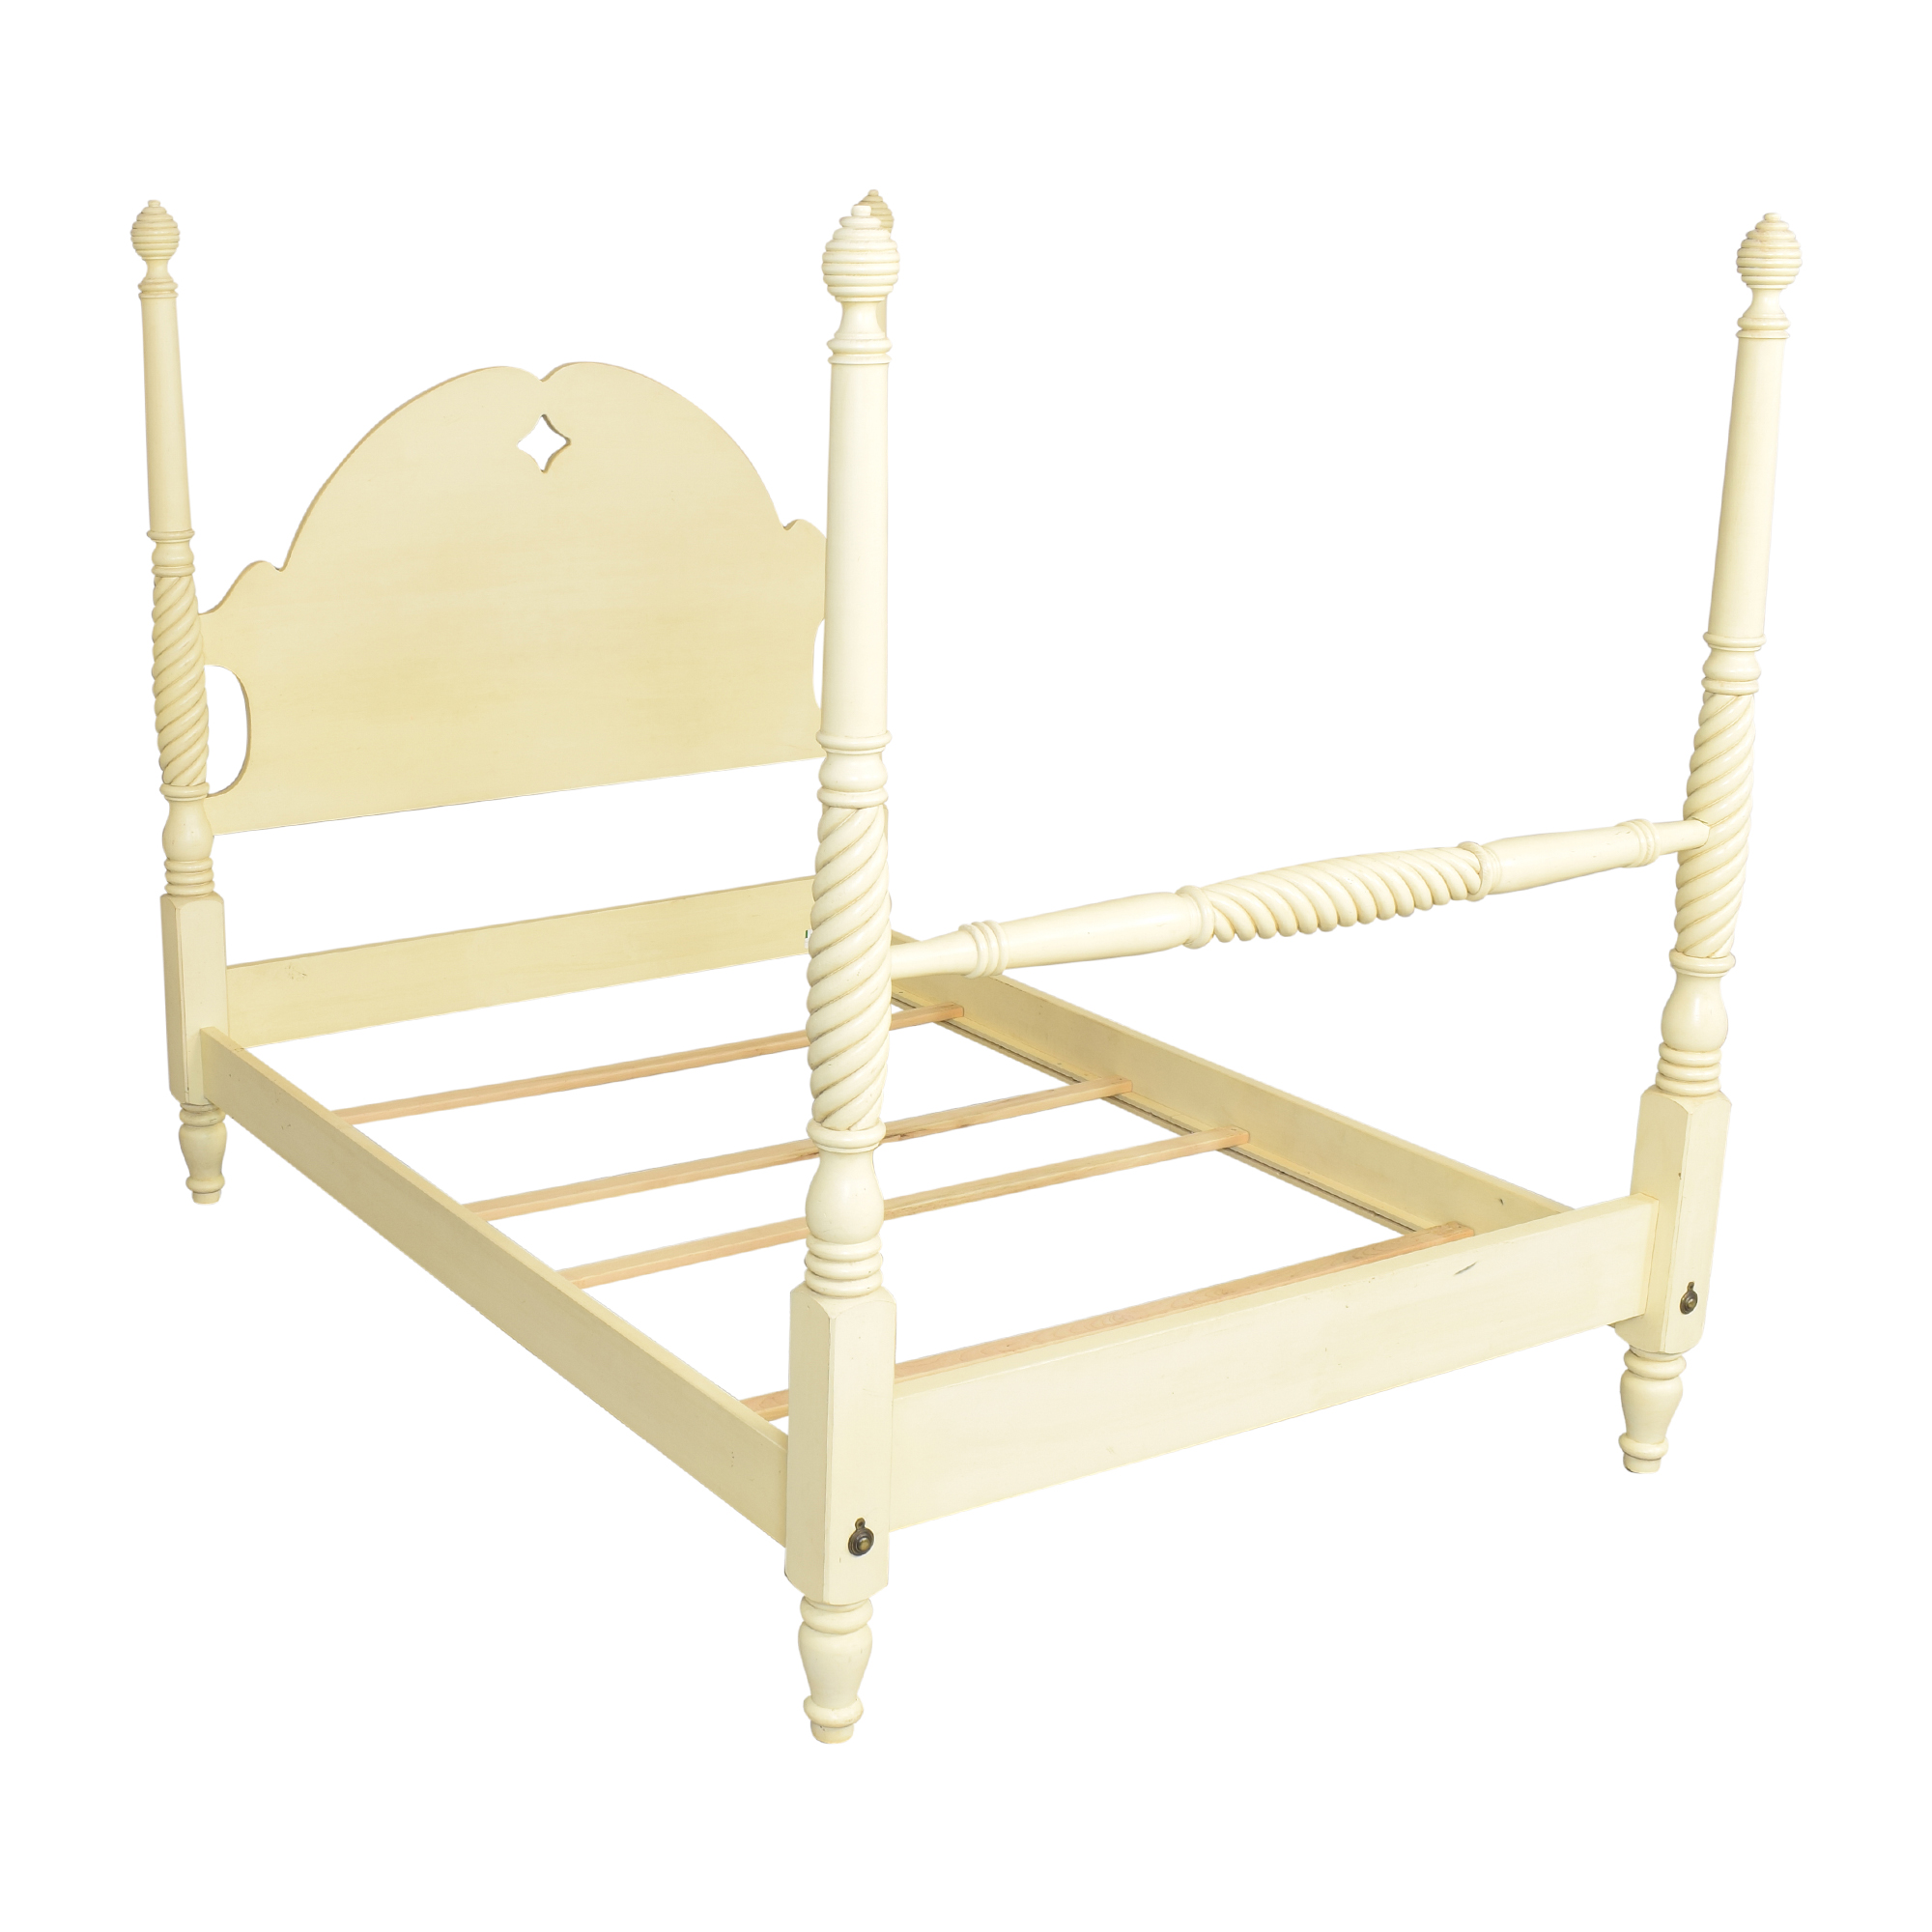 Ethan Allen Ethan Allen Country Crossings Four Poster Full Bed price